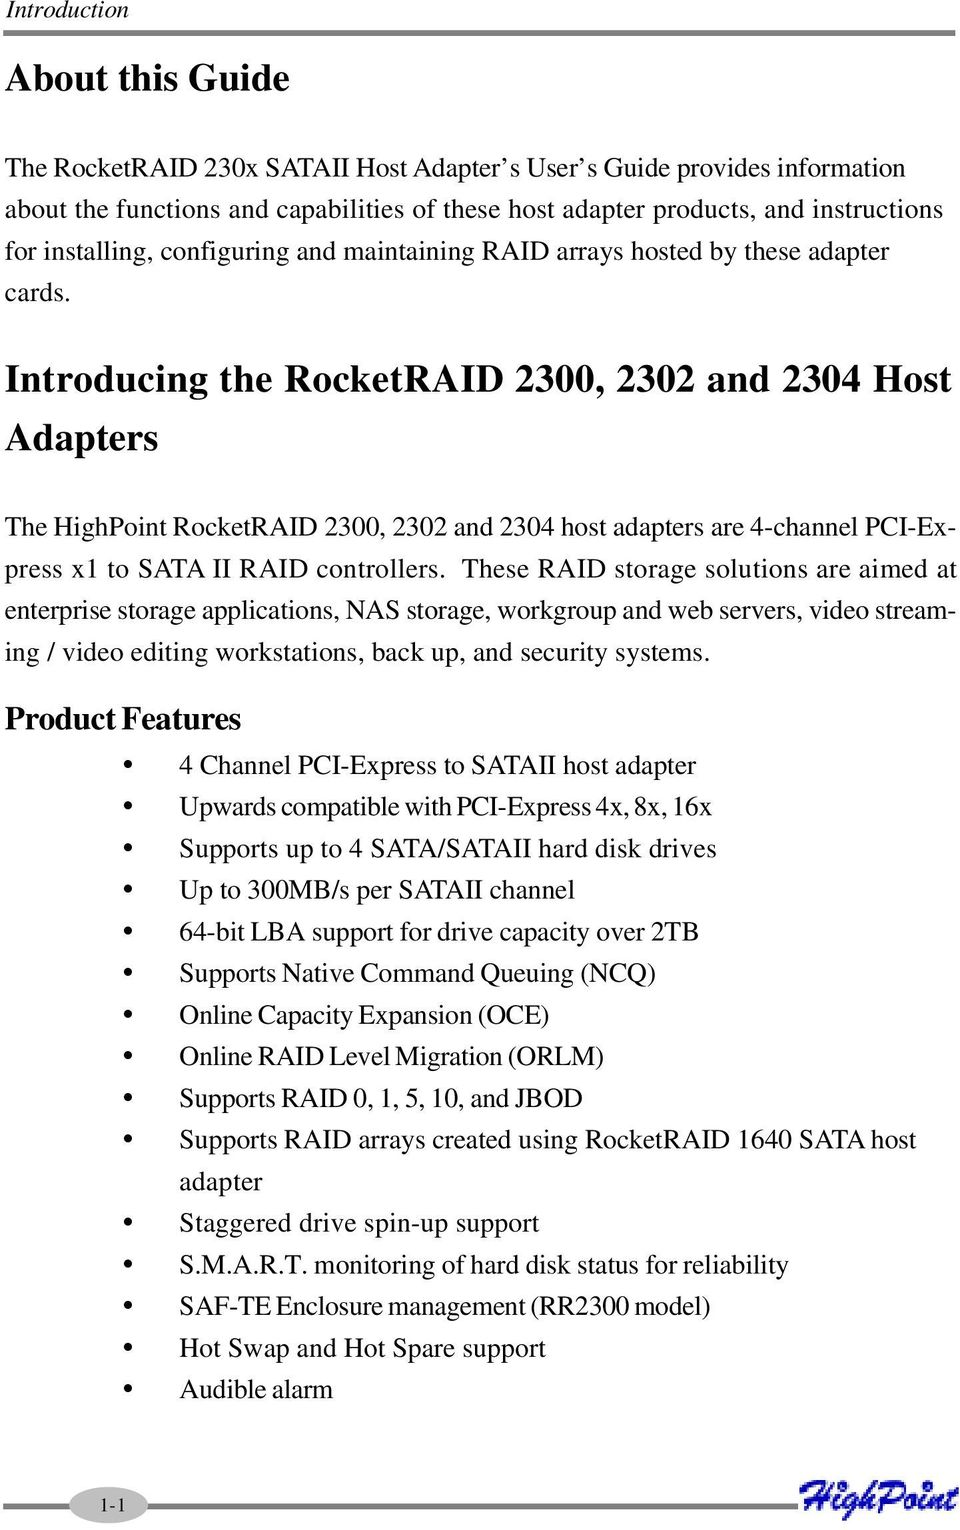 Introducing the RocketRAID 2300, 2302 and 2304 Host Adapters The HighPoint RocketRAID 2300, 2302 and 2304 host adapters are 4-channel PCI-Express x1 to SATA II RAID controllers.